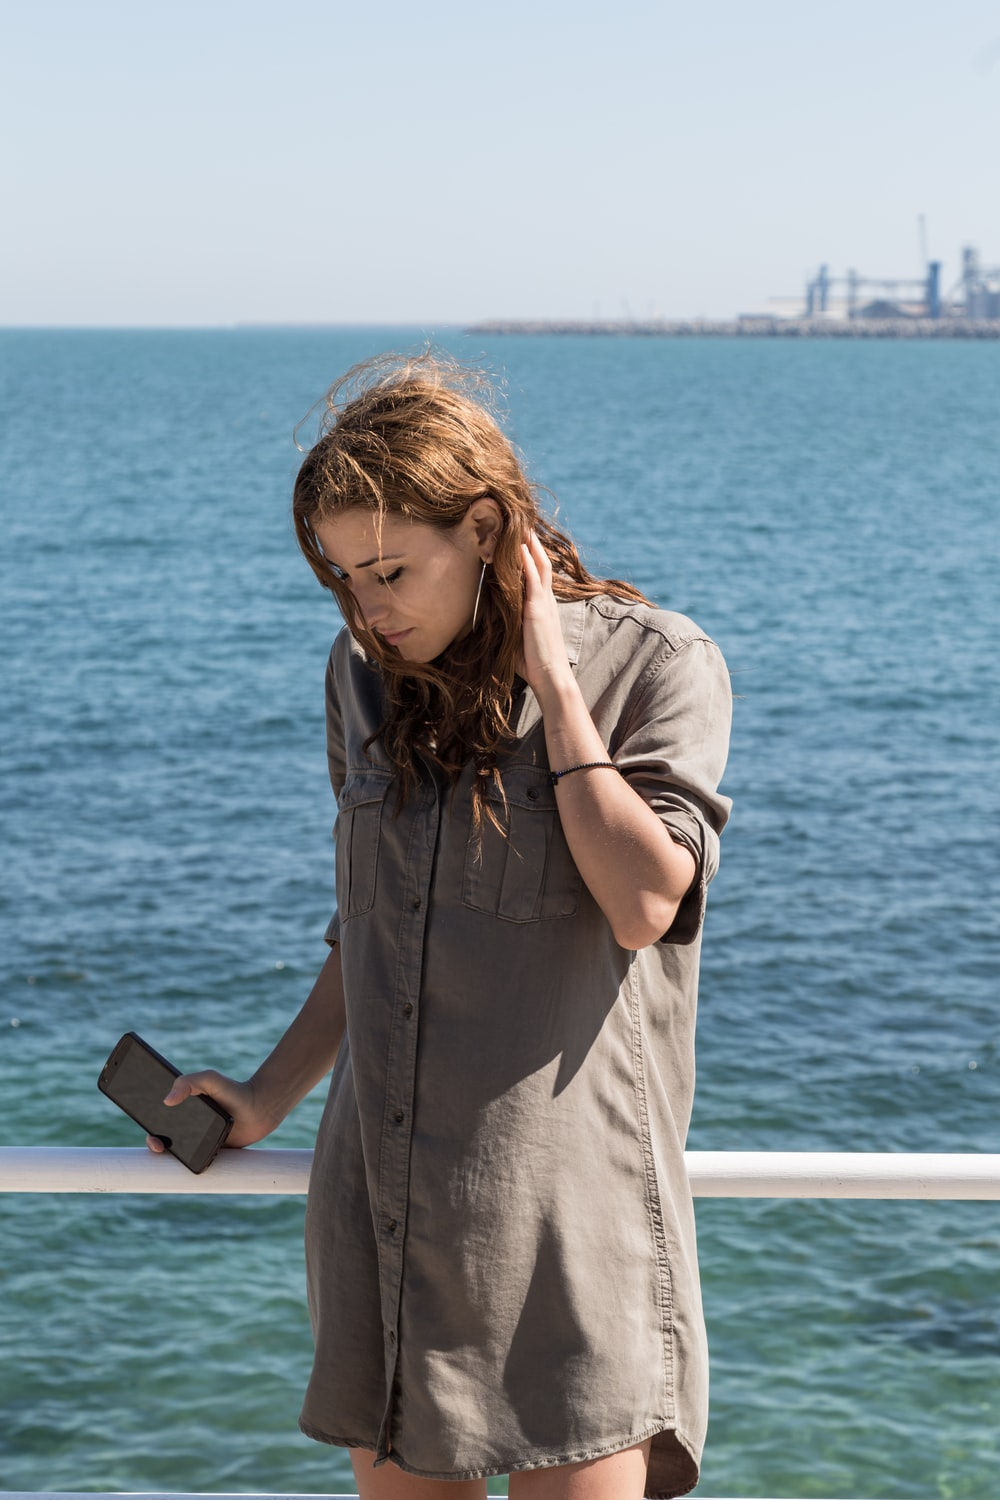 woman wearing brown button-up long-sleeved dress beside large body of water during daytime